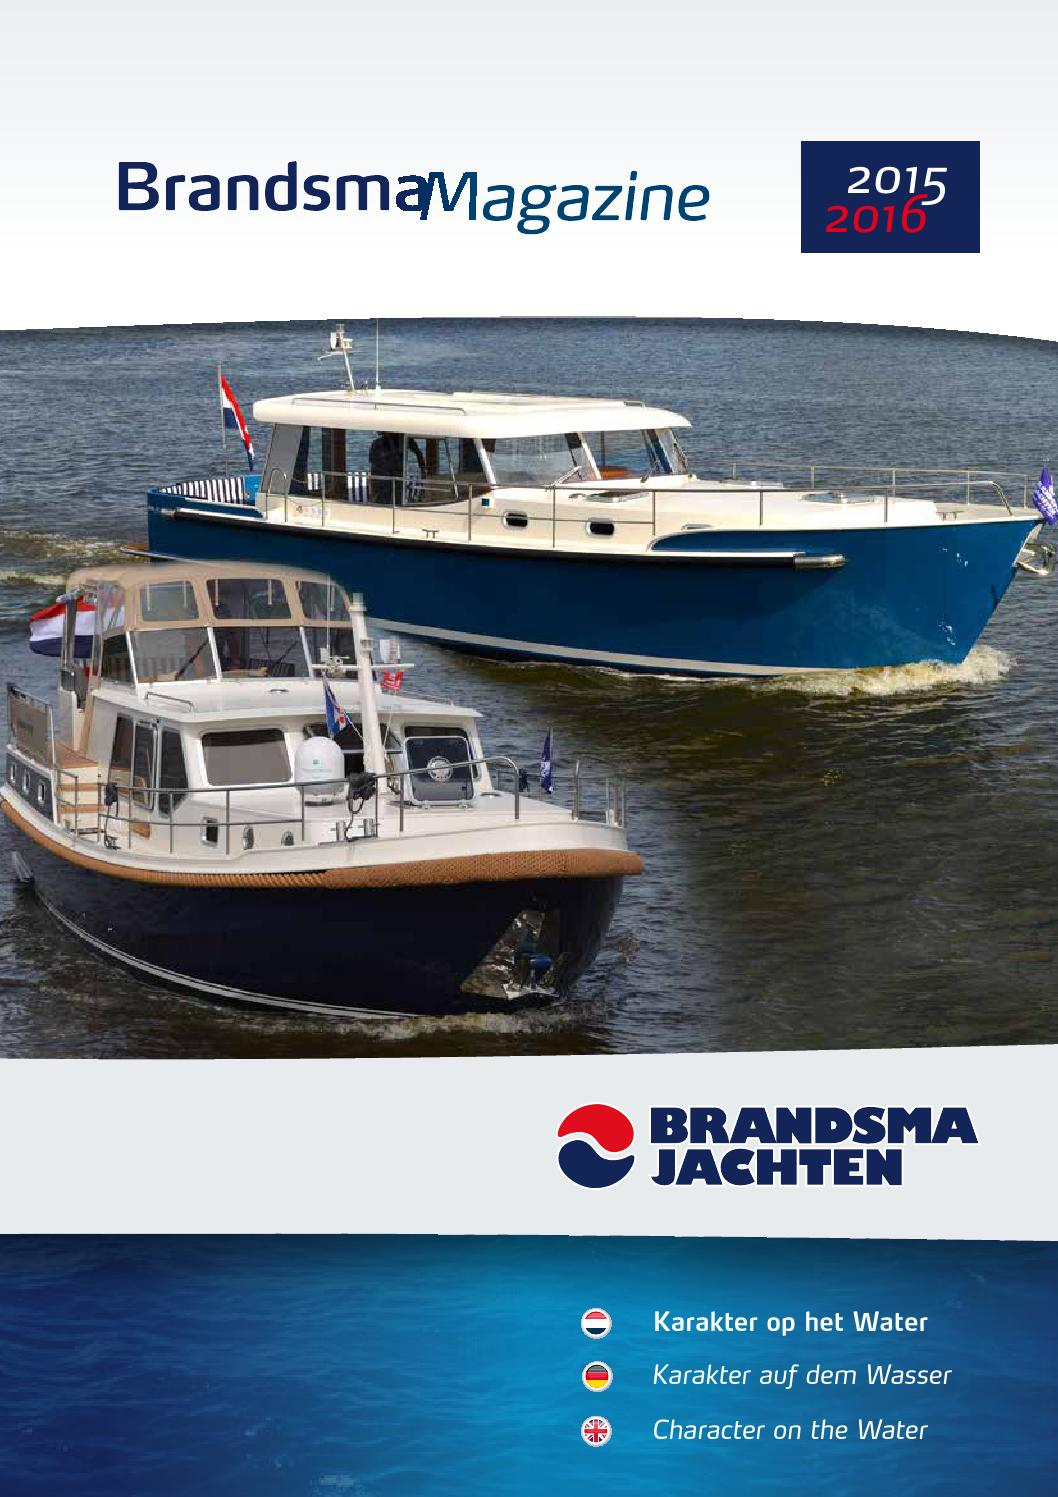 Brandsma Magazine 2015 By Jachten Issuu Solar Cruise 160w Package Incl Pwm Controller Charges